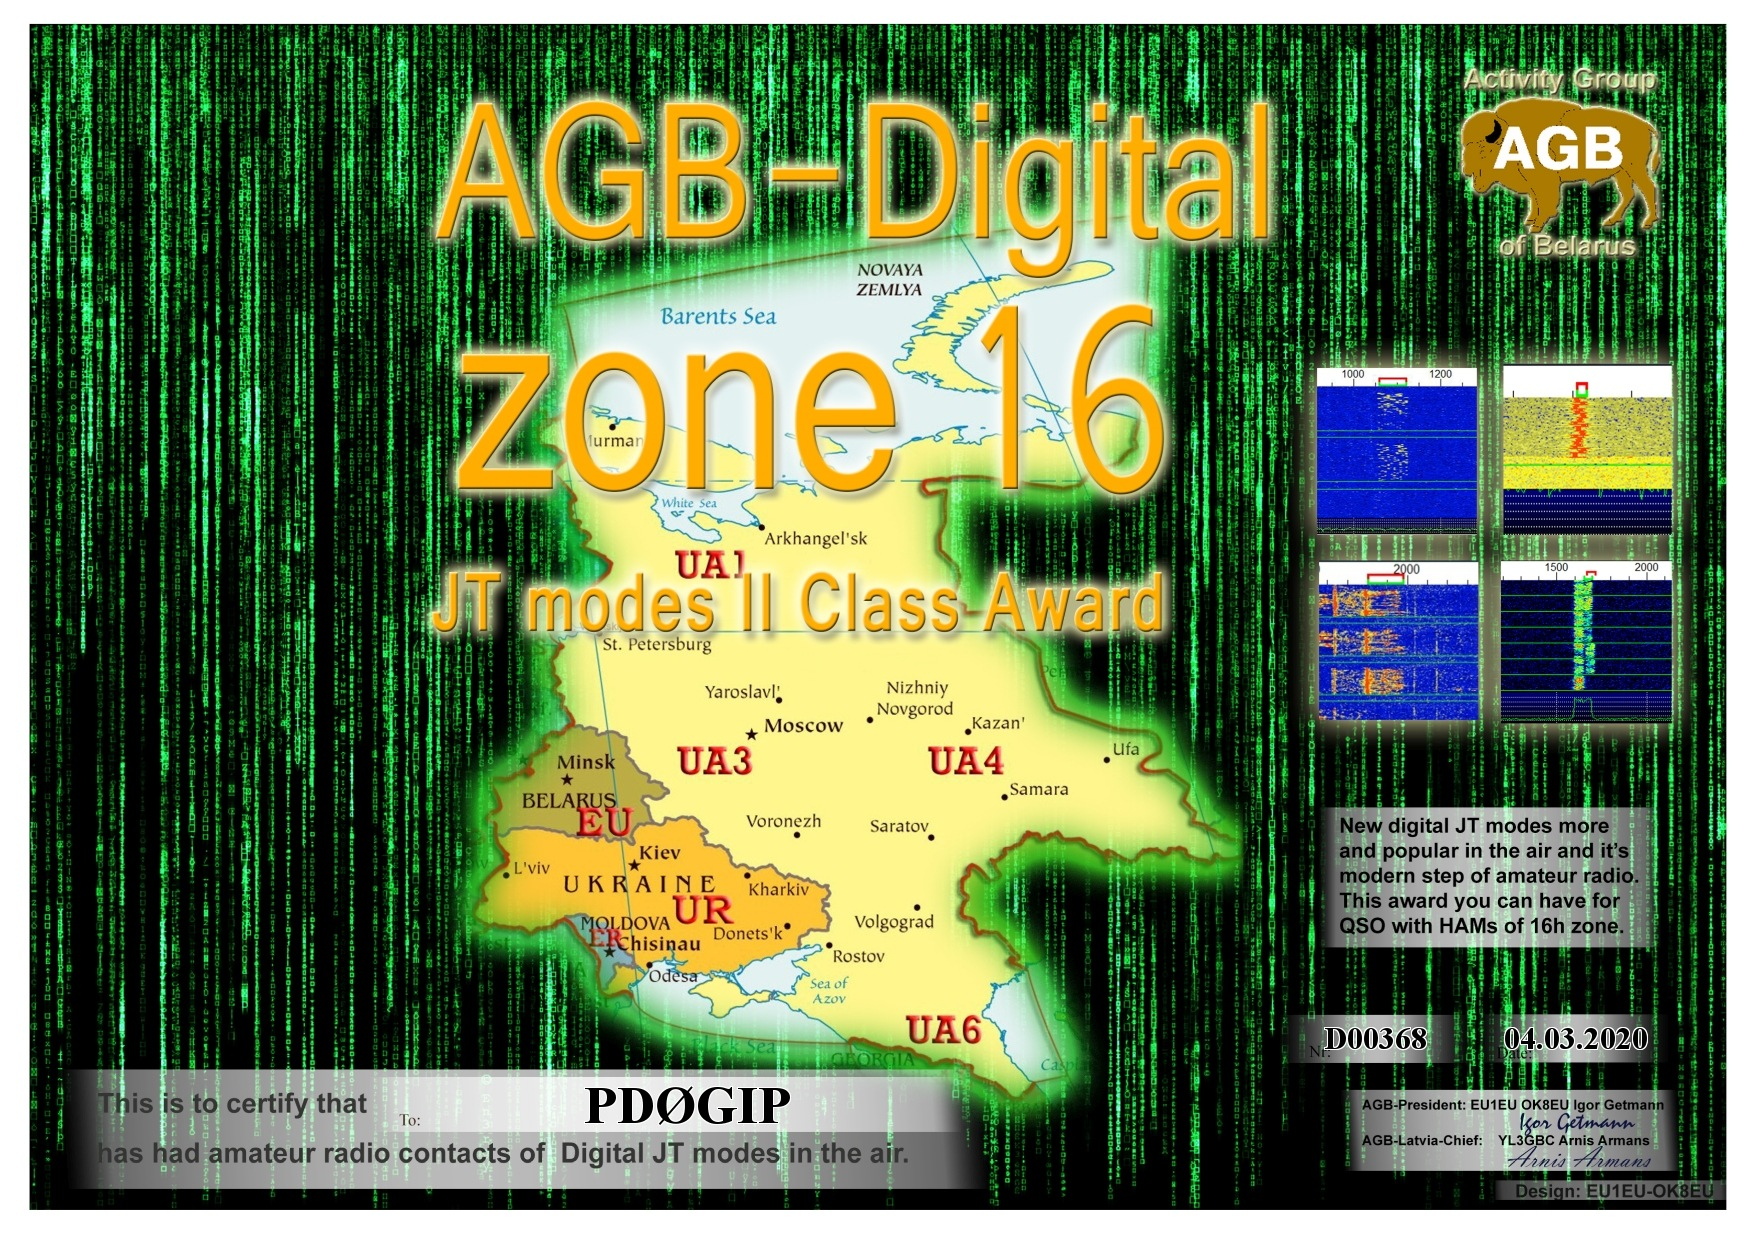 PD0GIP ZONE16 BASIC II AGB